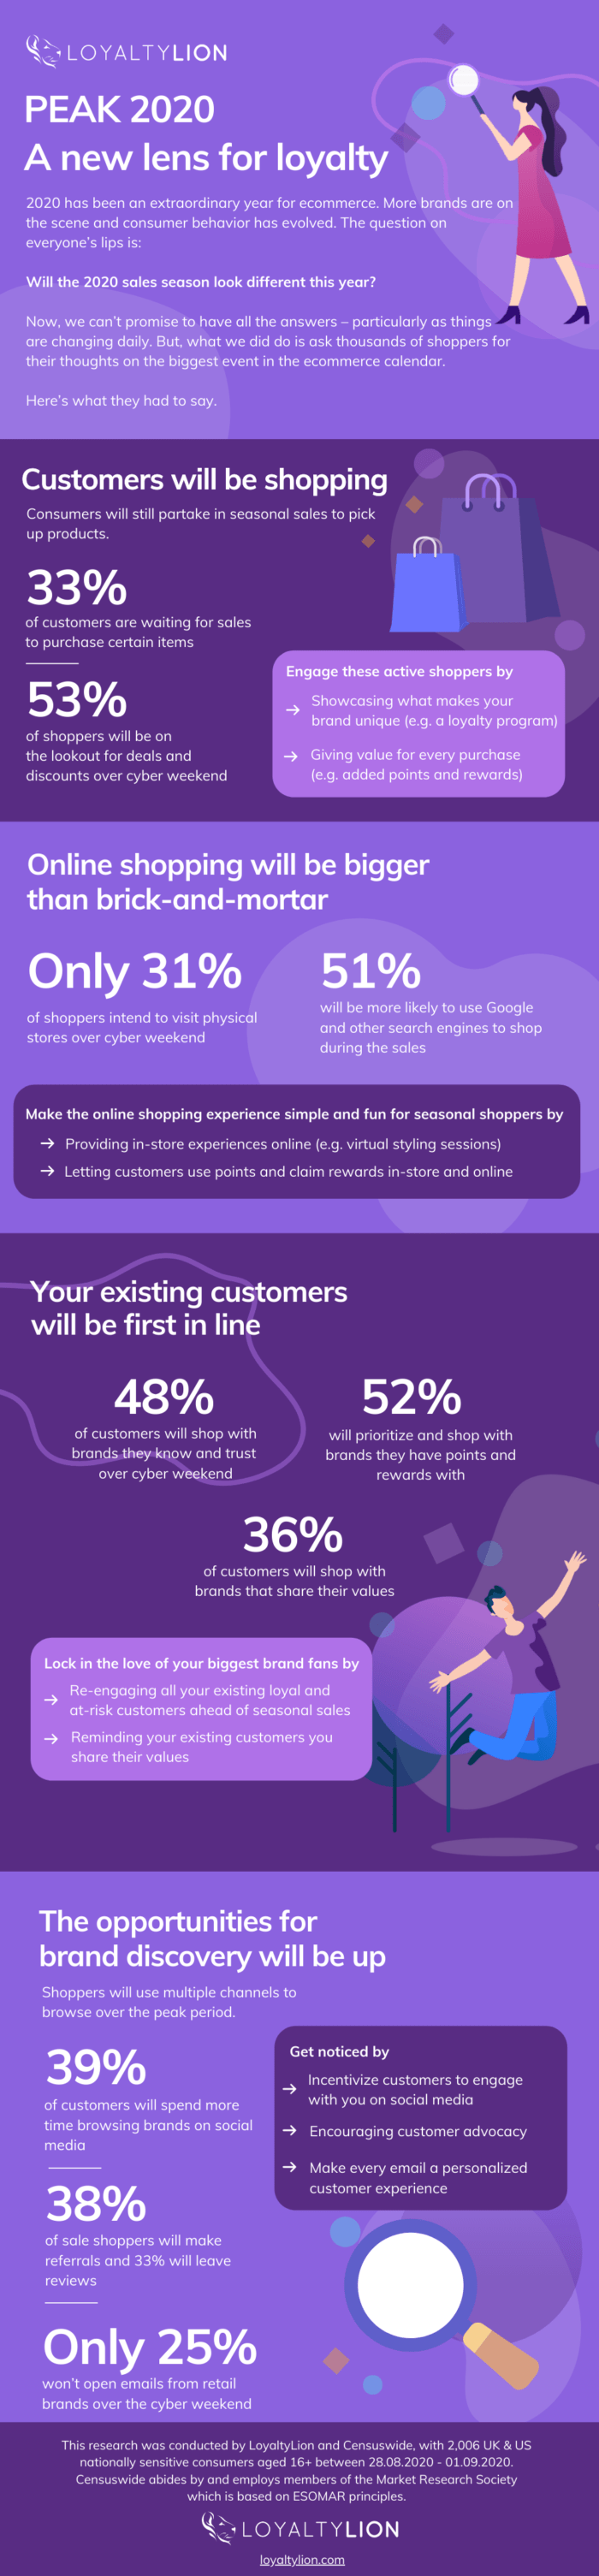 11 retail holiday marketing and loyalty stats you should know for 2020 Infographic Image